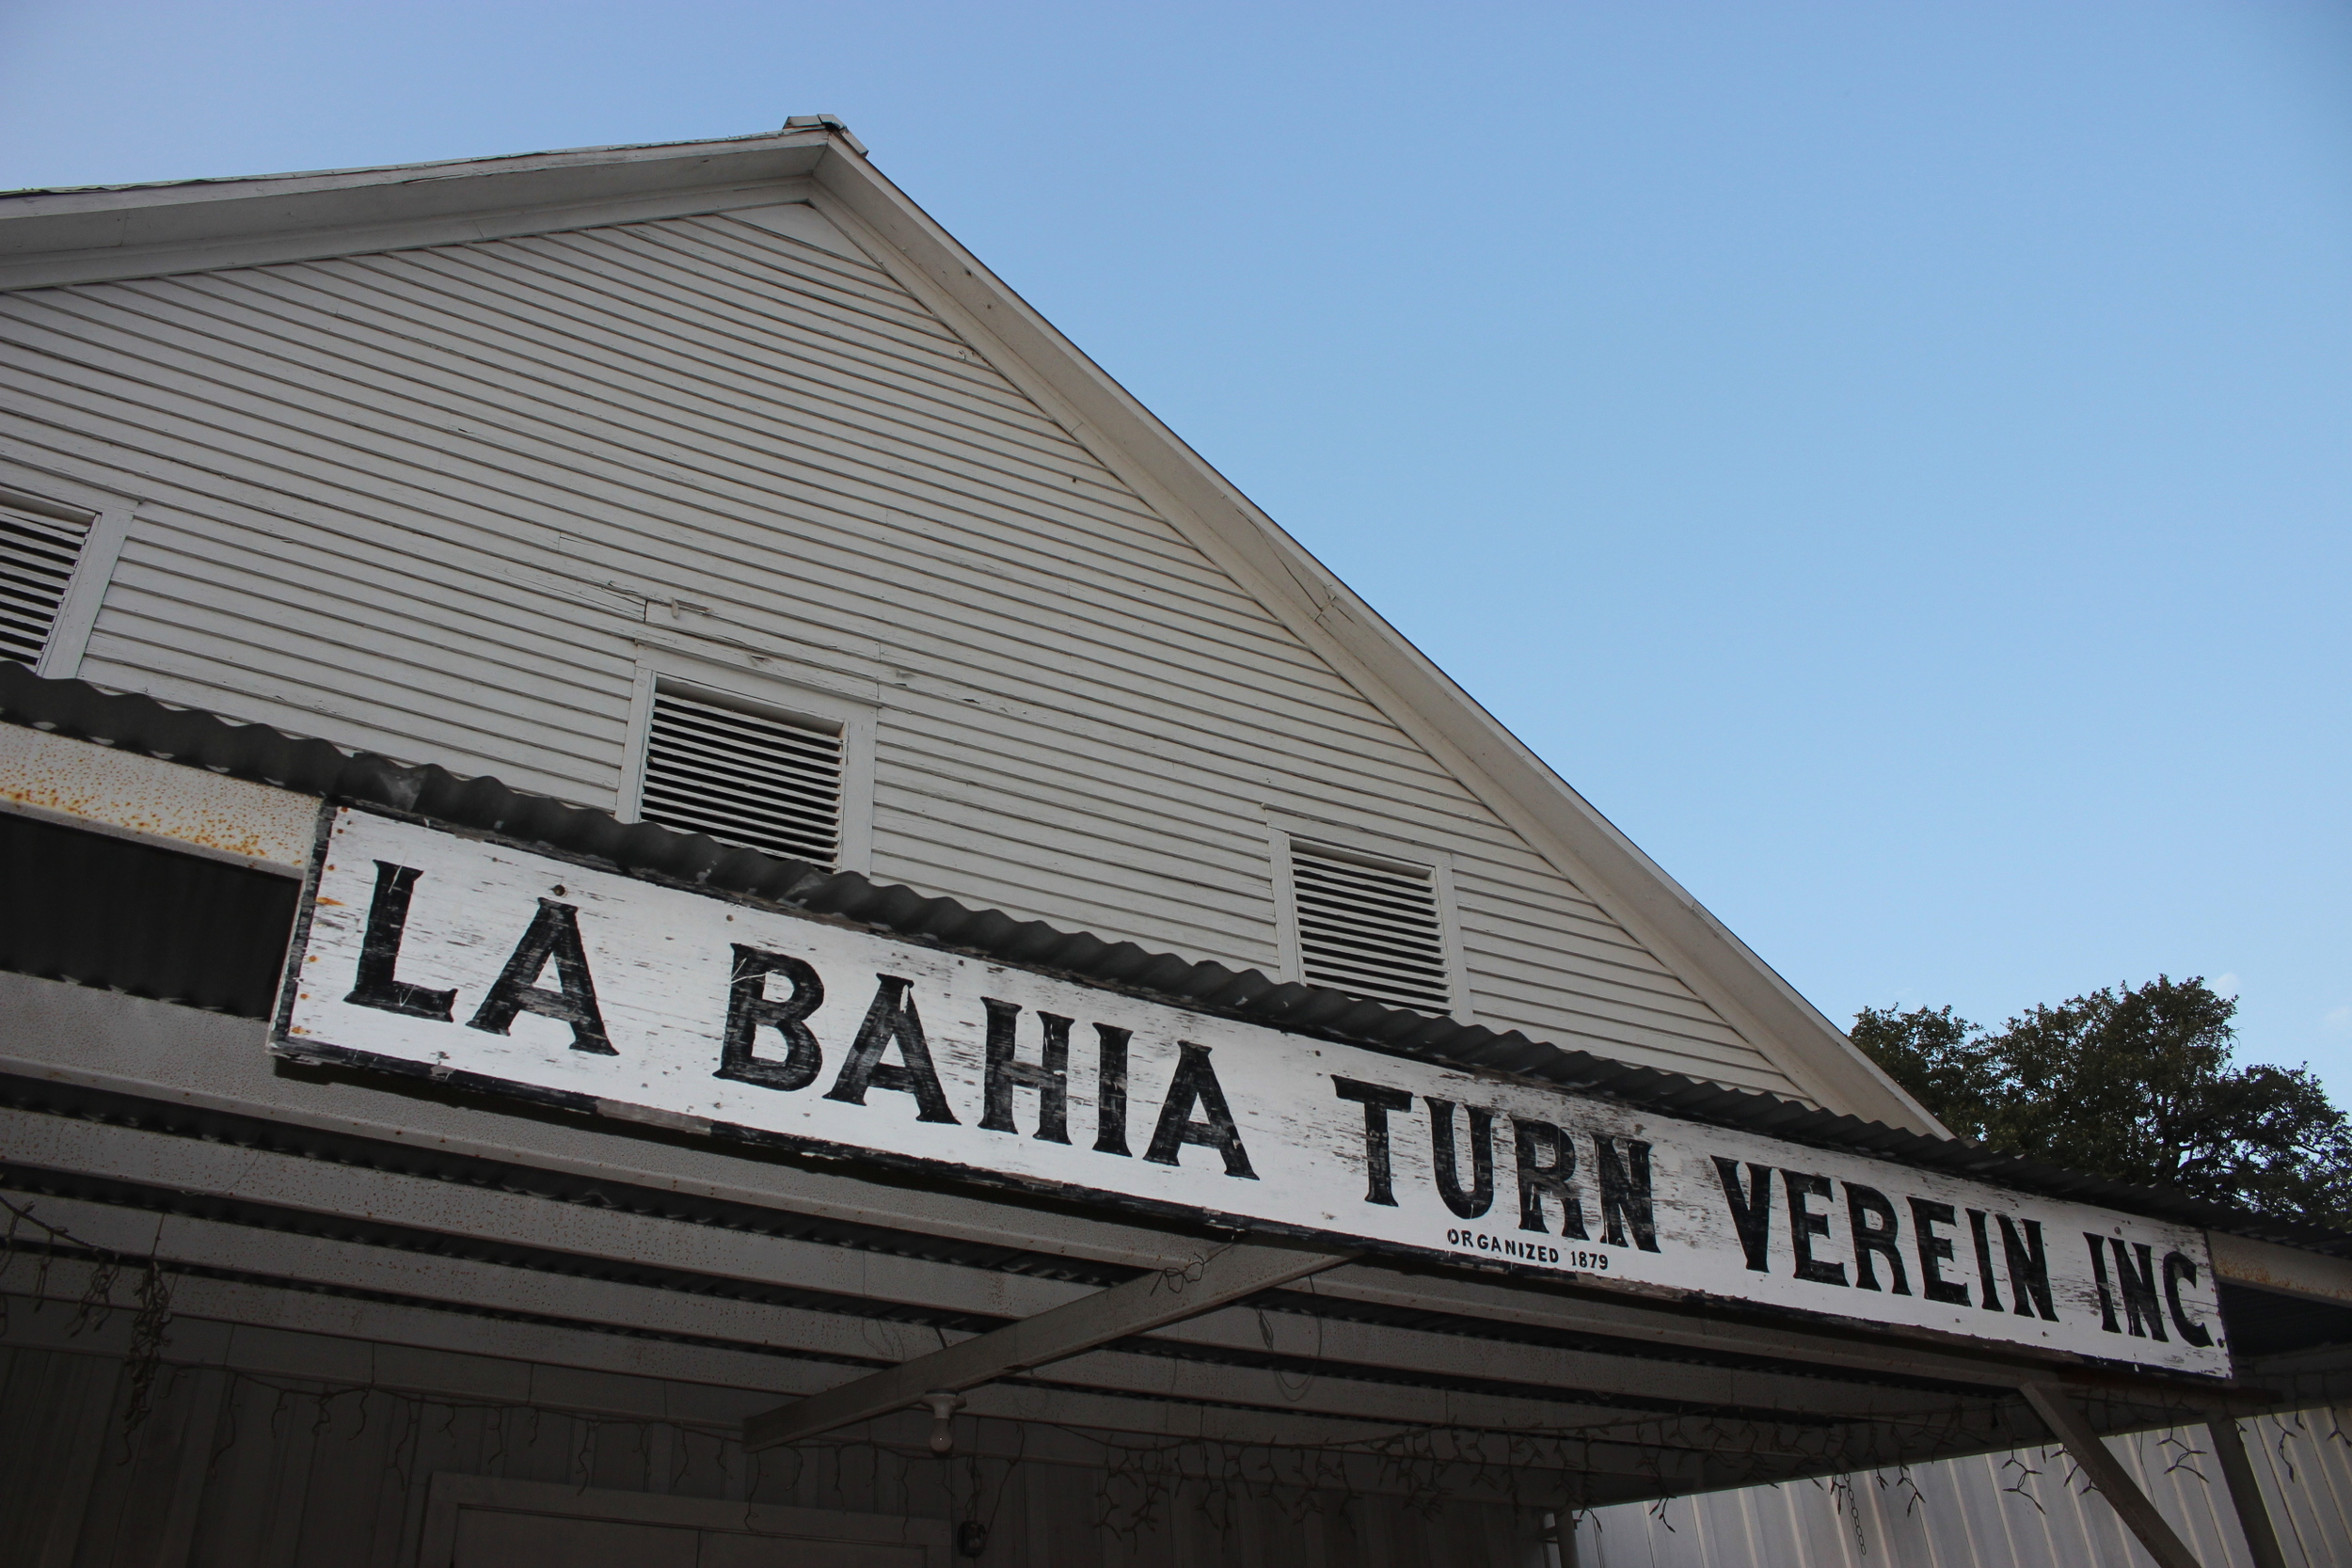 The 114-year-old La Bahia Turn Verein will be the site of the 2nd Annual Festival of Texas Fiddling, Saturday, Nov. 7, 2015./Gary E. McKee photo